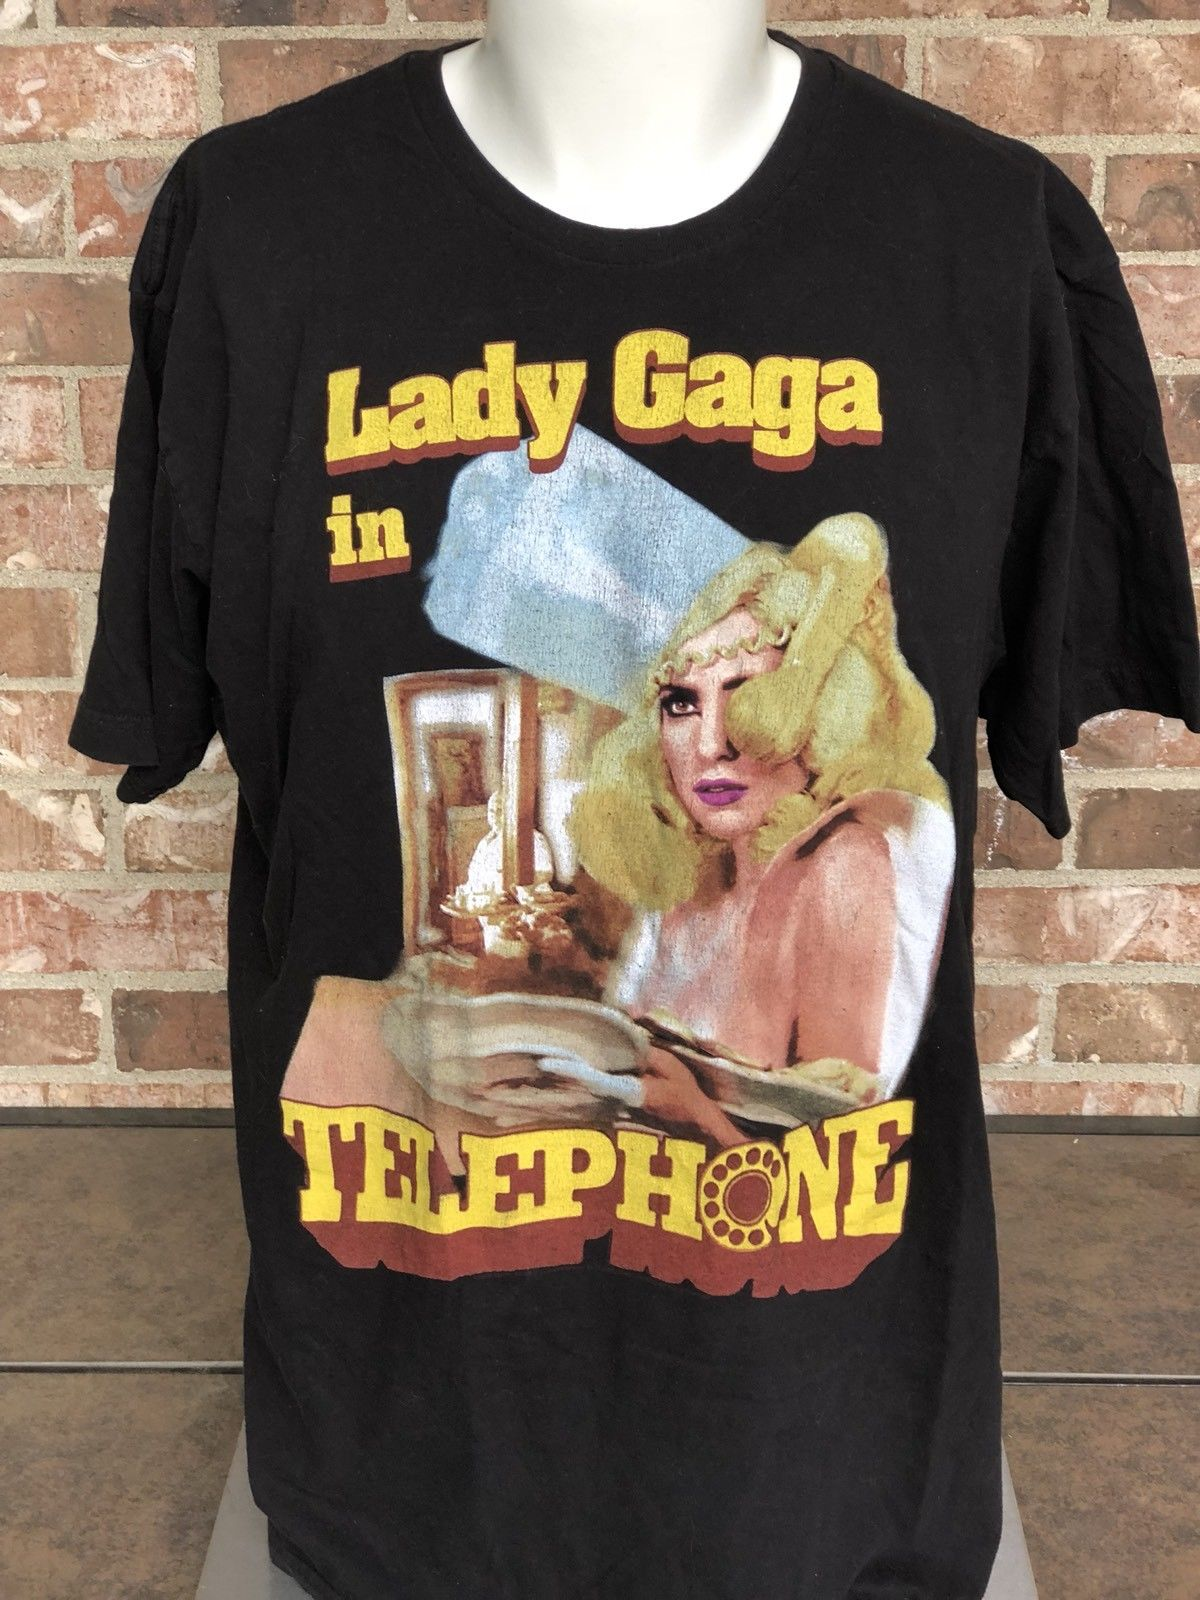 LADY GAGA TELEPHONE THE MONSTER BALL TOUR T-SHIRT 2010 SIZE XL